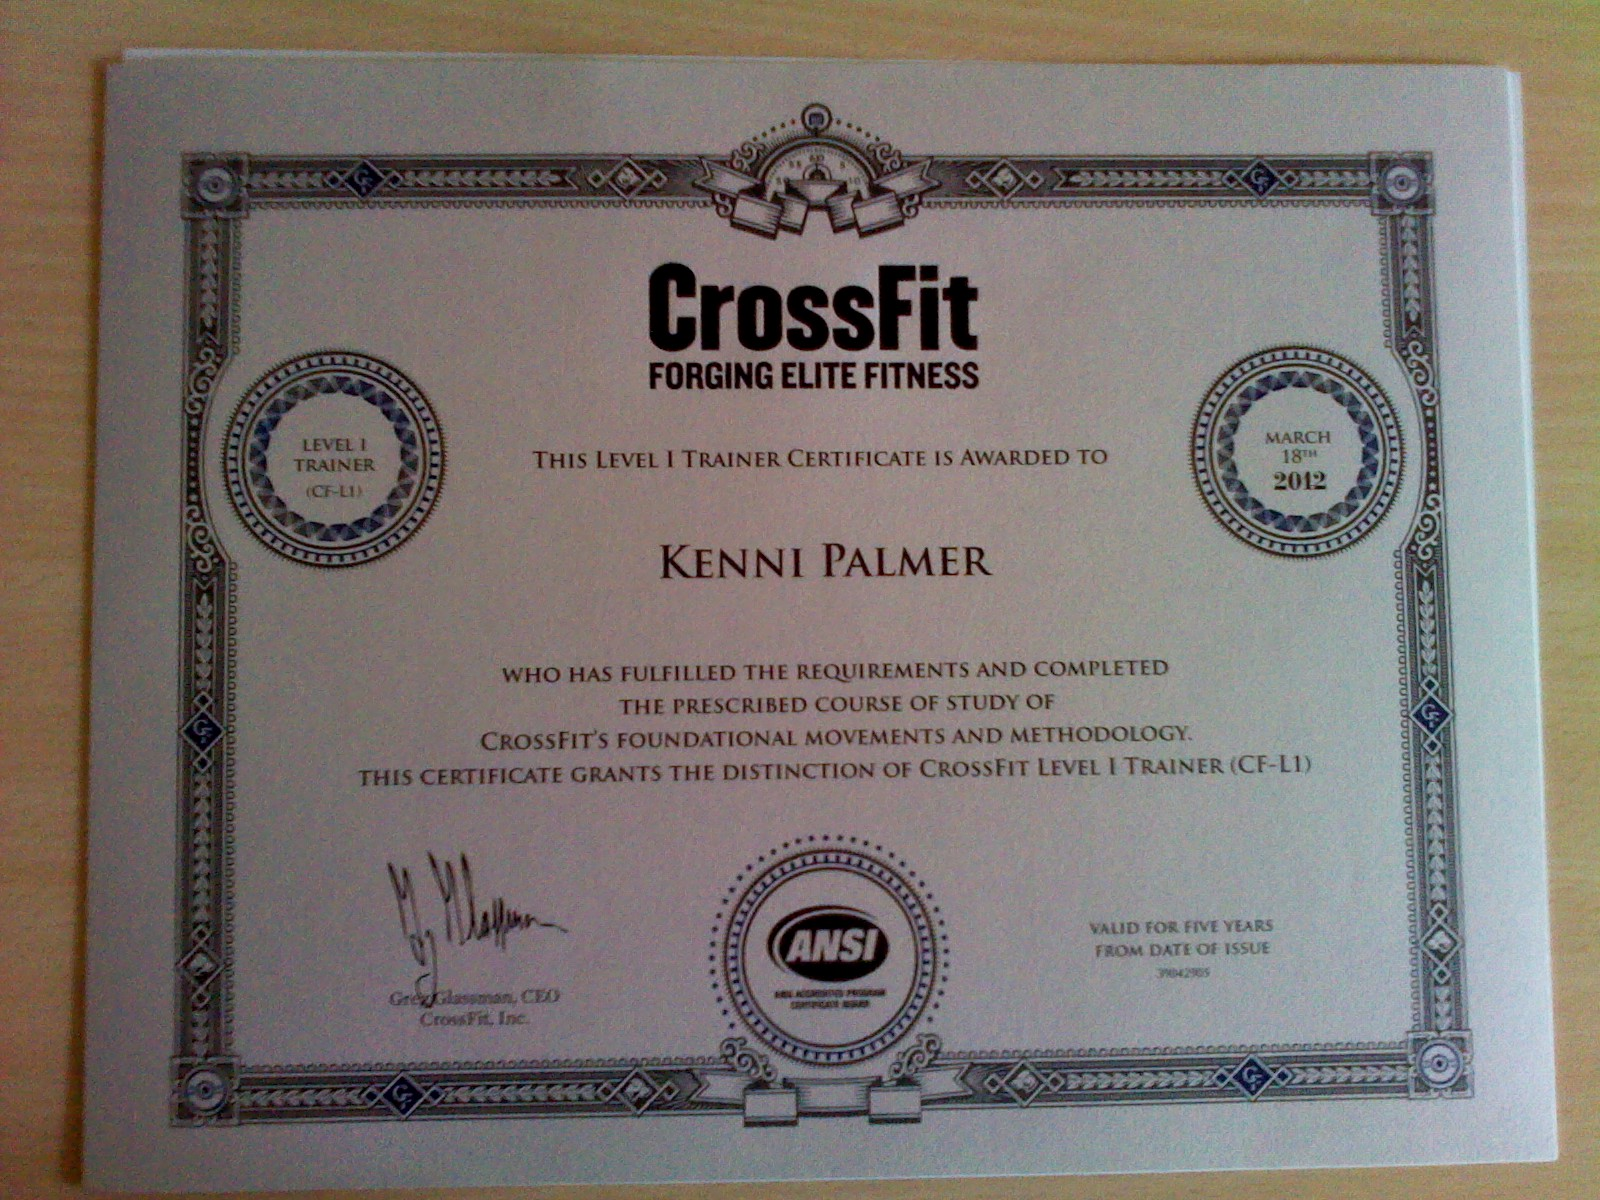 crossfit cf l1 level certificate certification trainer hats harry sharing others forward